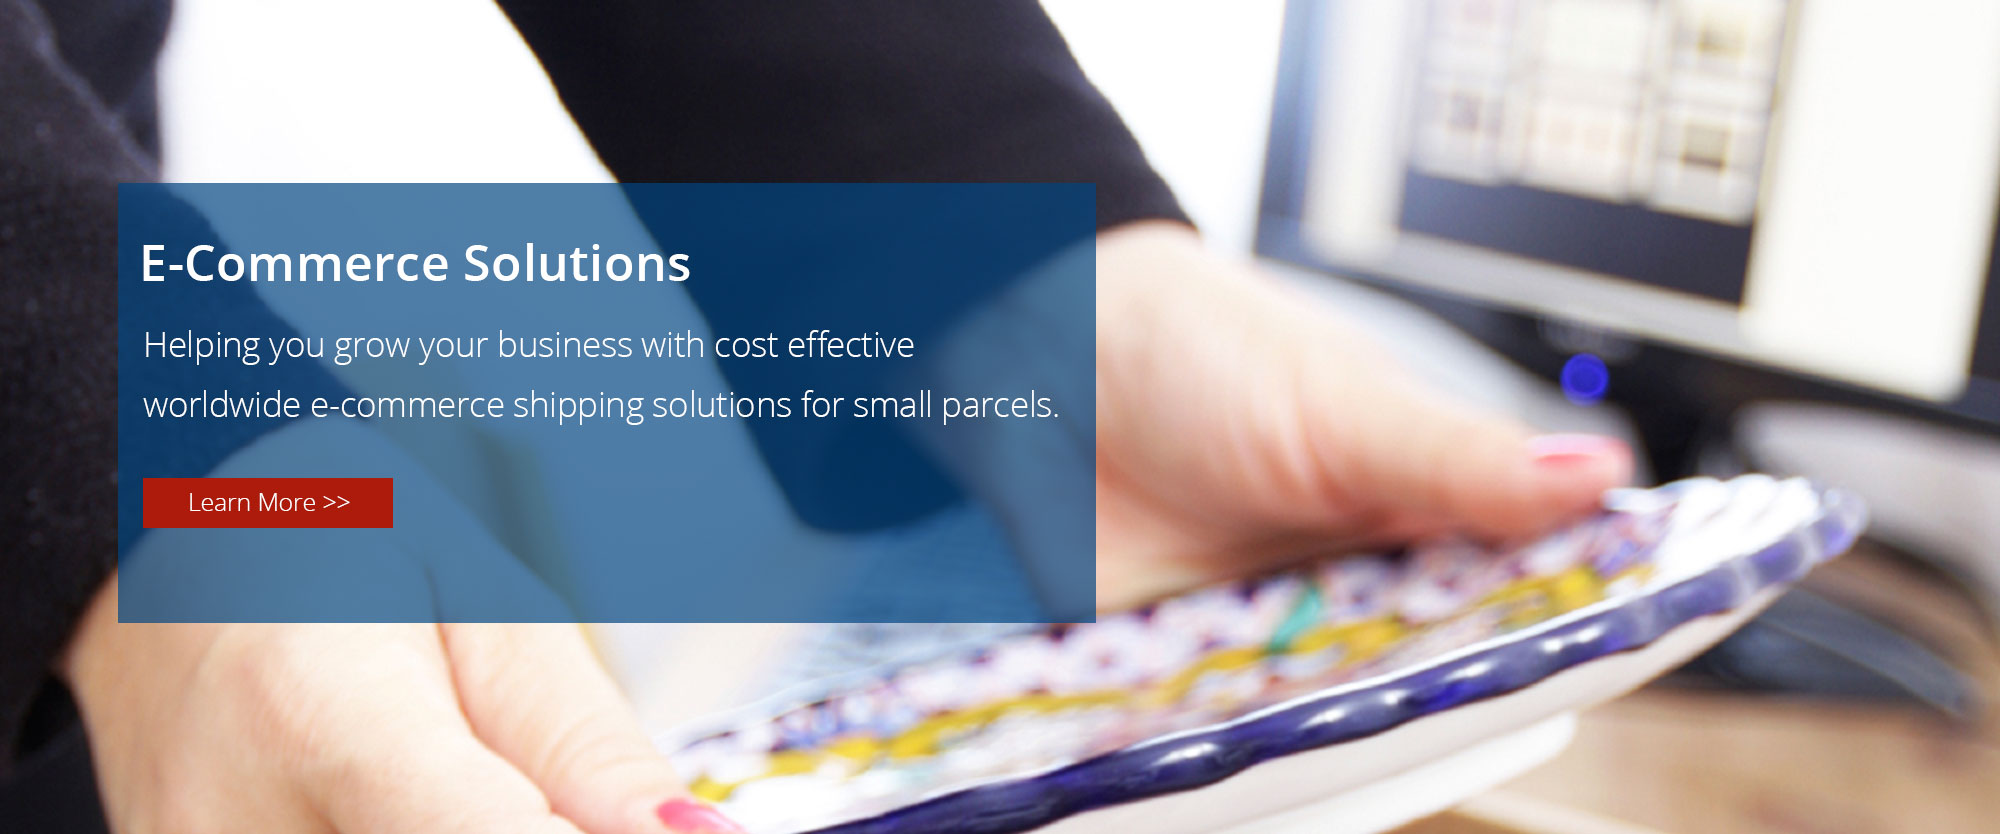 E-Commerce Shipping Solutions, Small Parcel, Small Package Shipping, Business Shipping Solutions